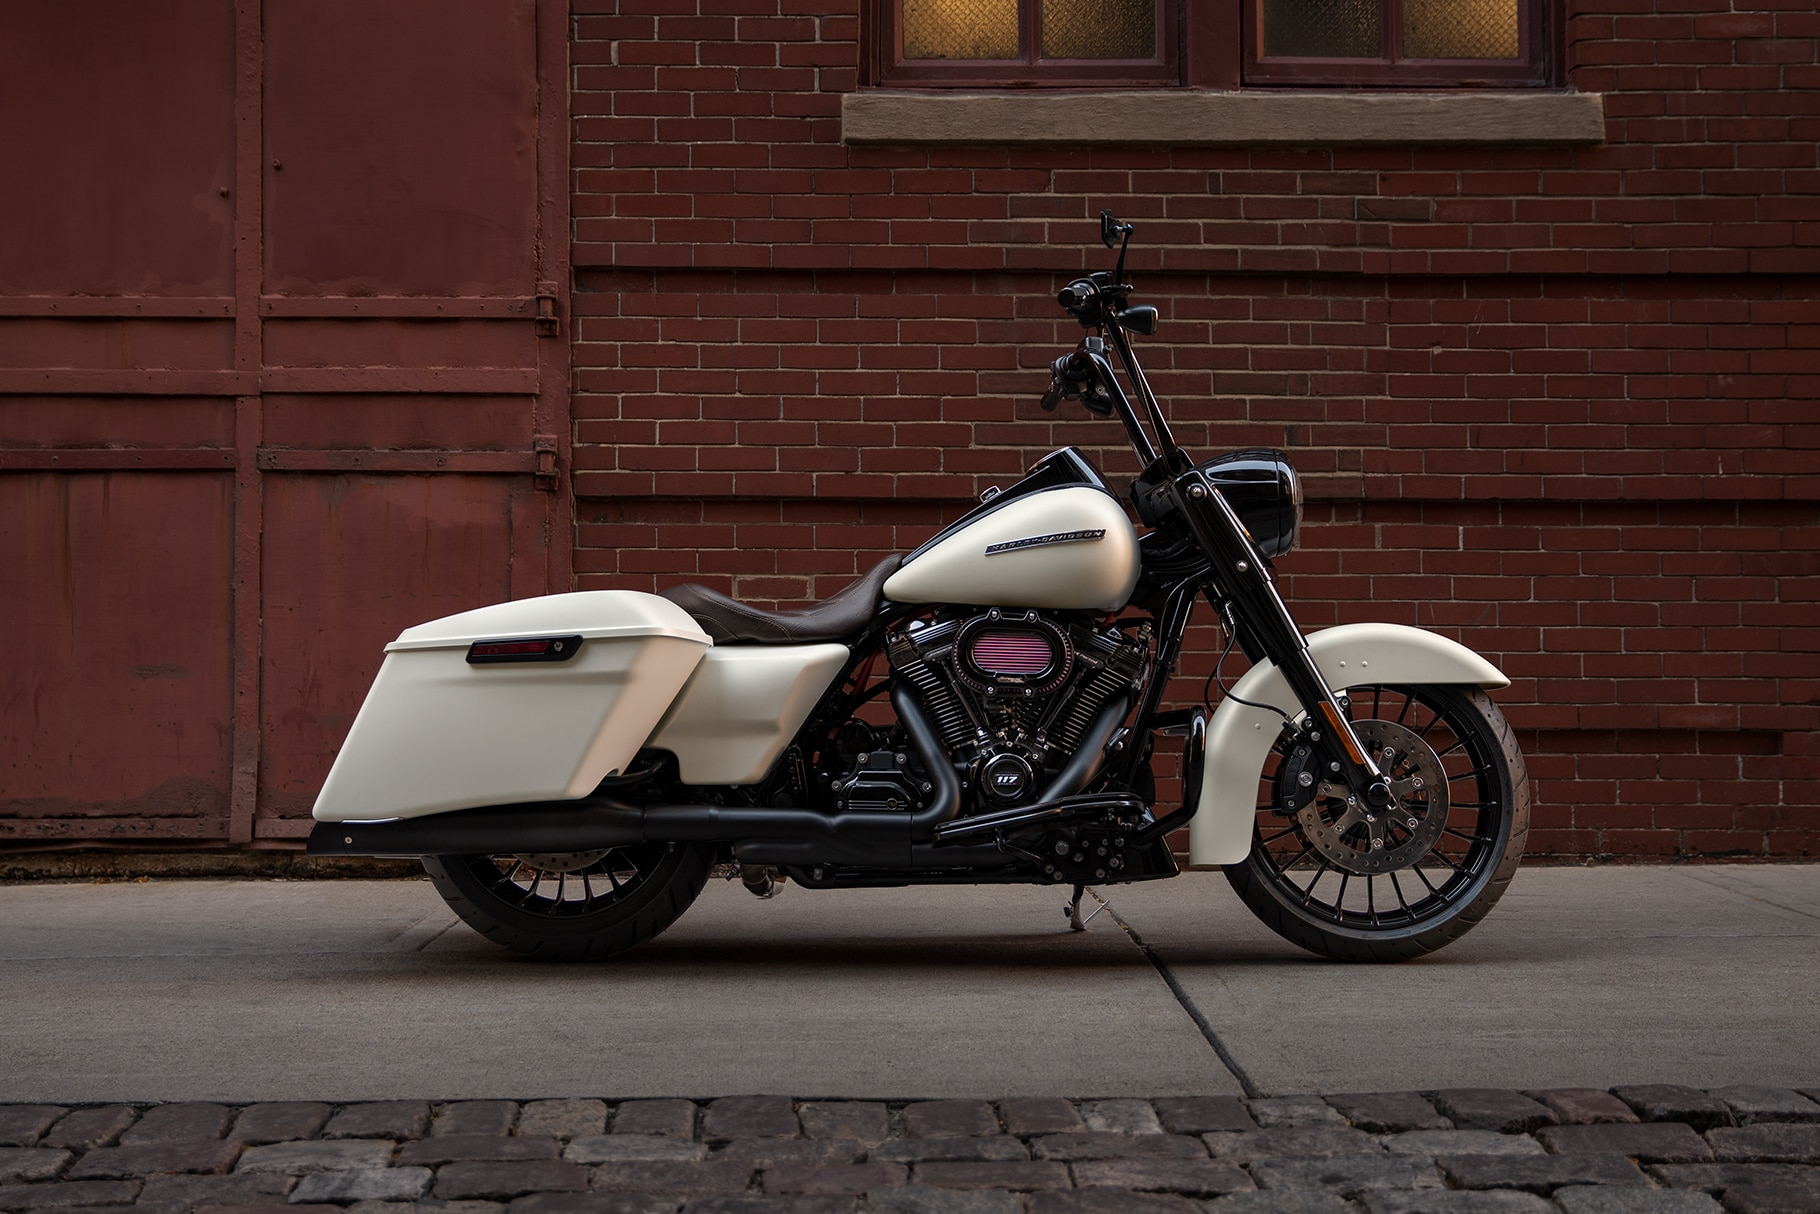 2019 Harley-Davidson Road King Special White Motorcycle